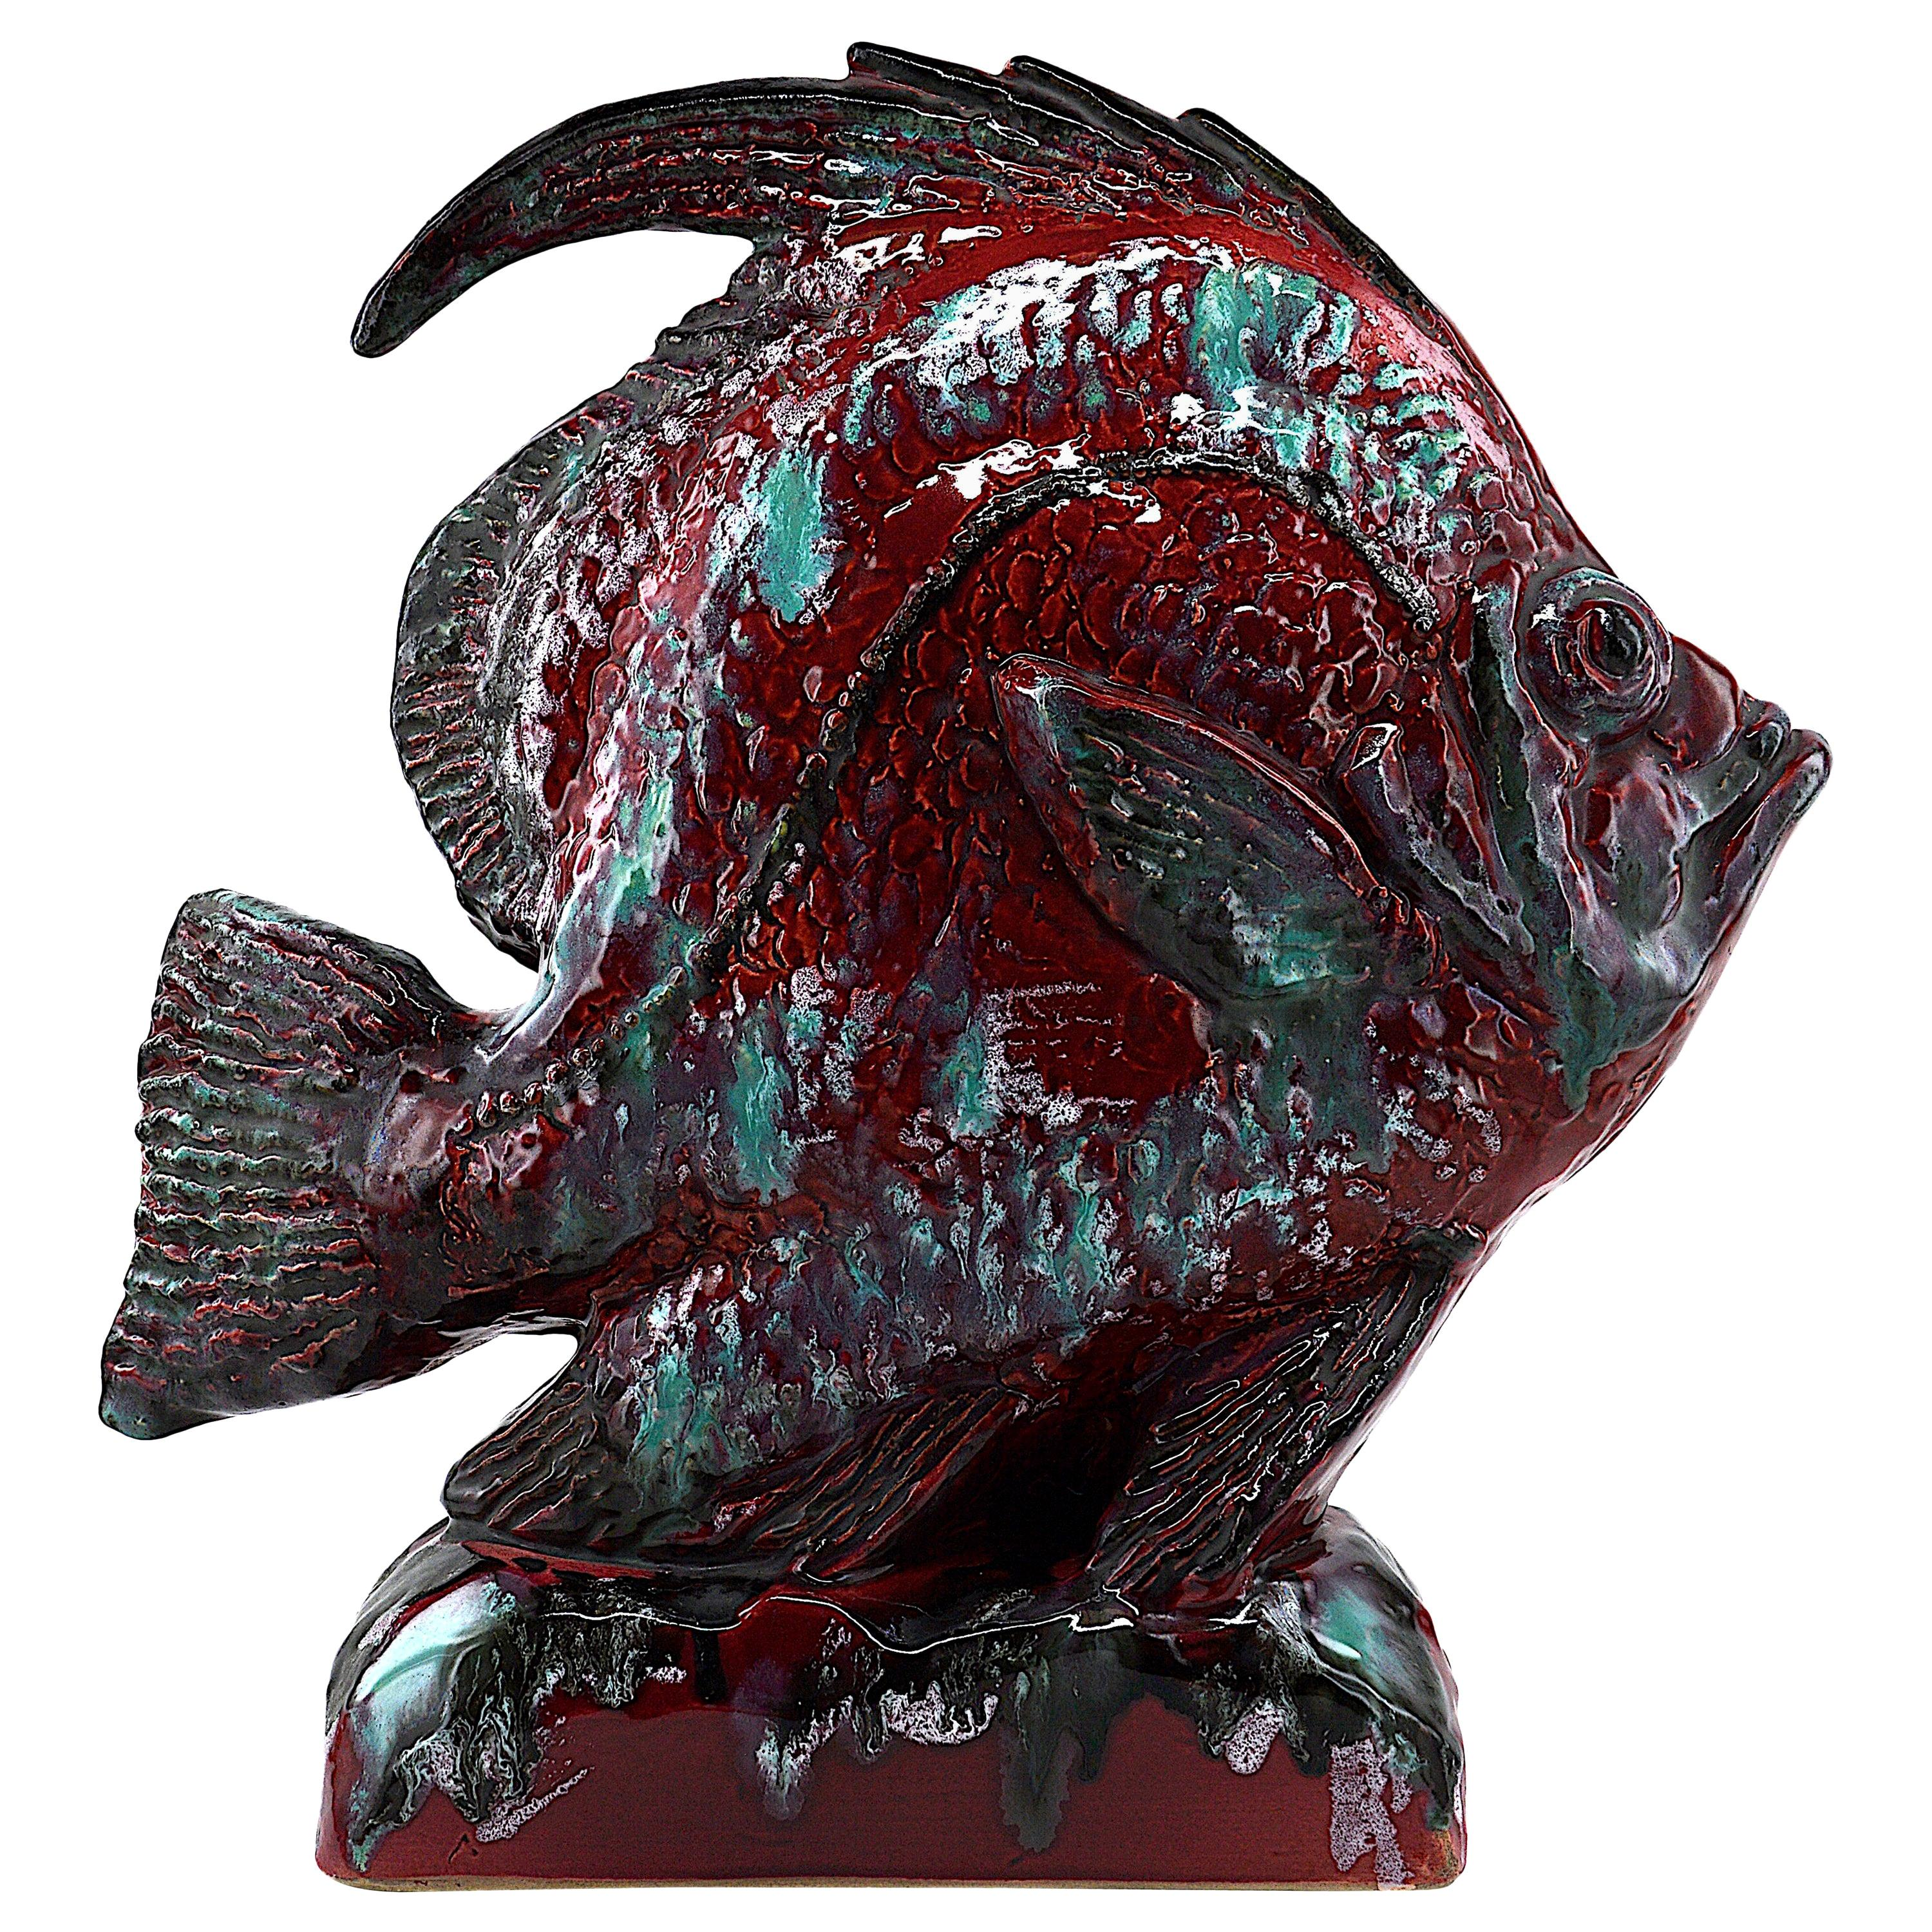 French Midcentury Glazed Terracotta Fish Sculpture, 1950s